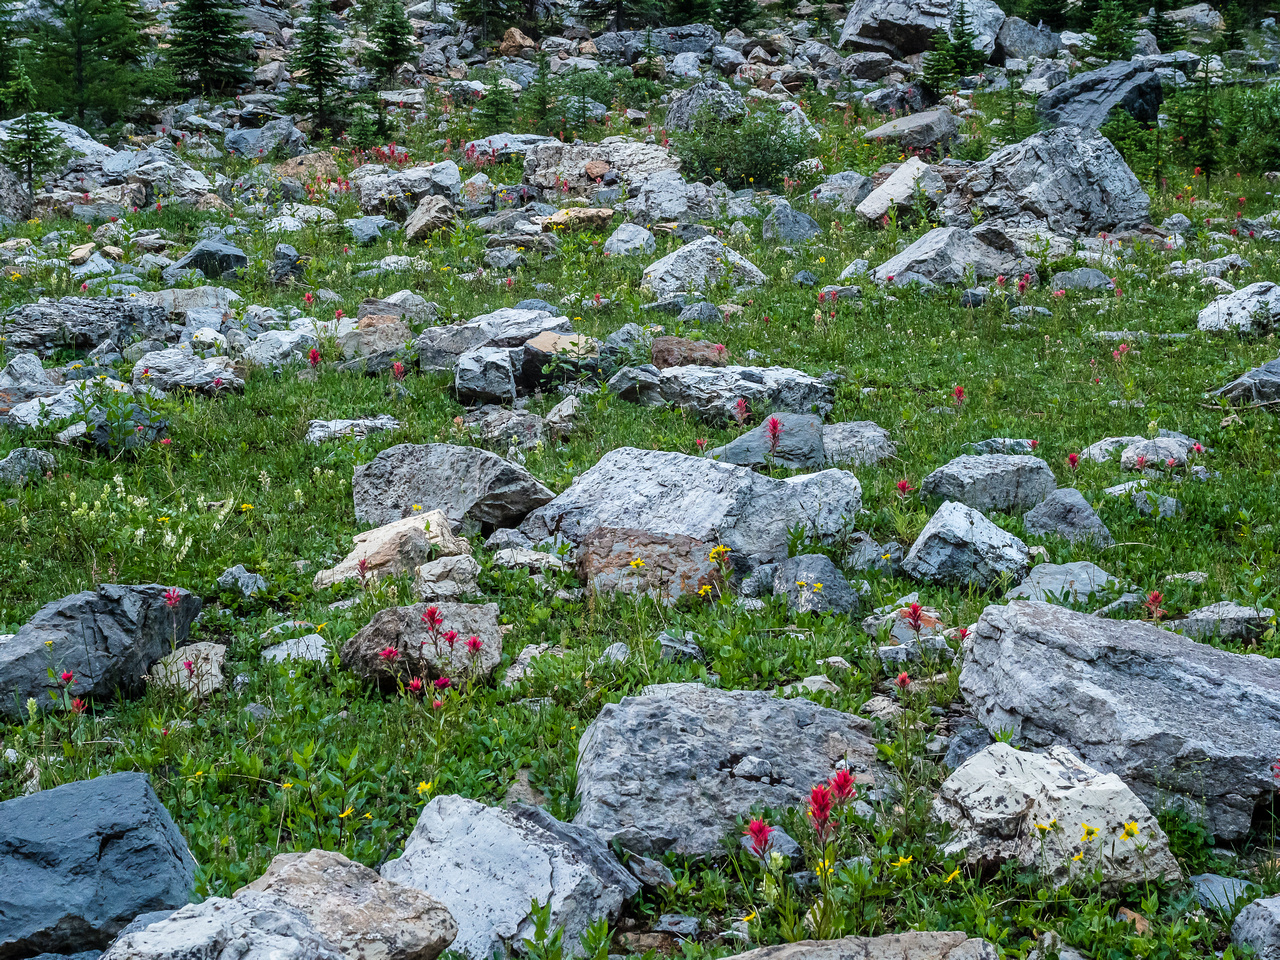 The wildflowers in the alpine valley were vibrant and thriving.